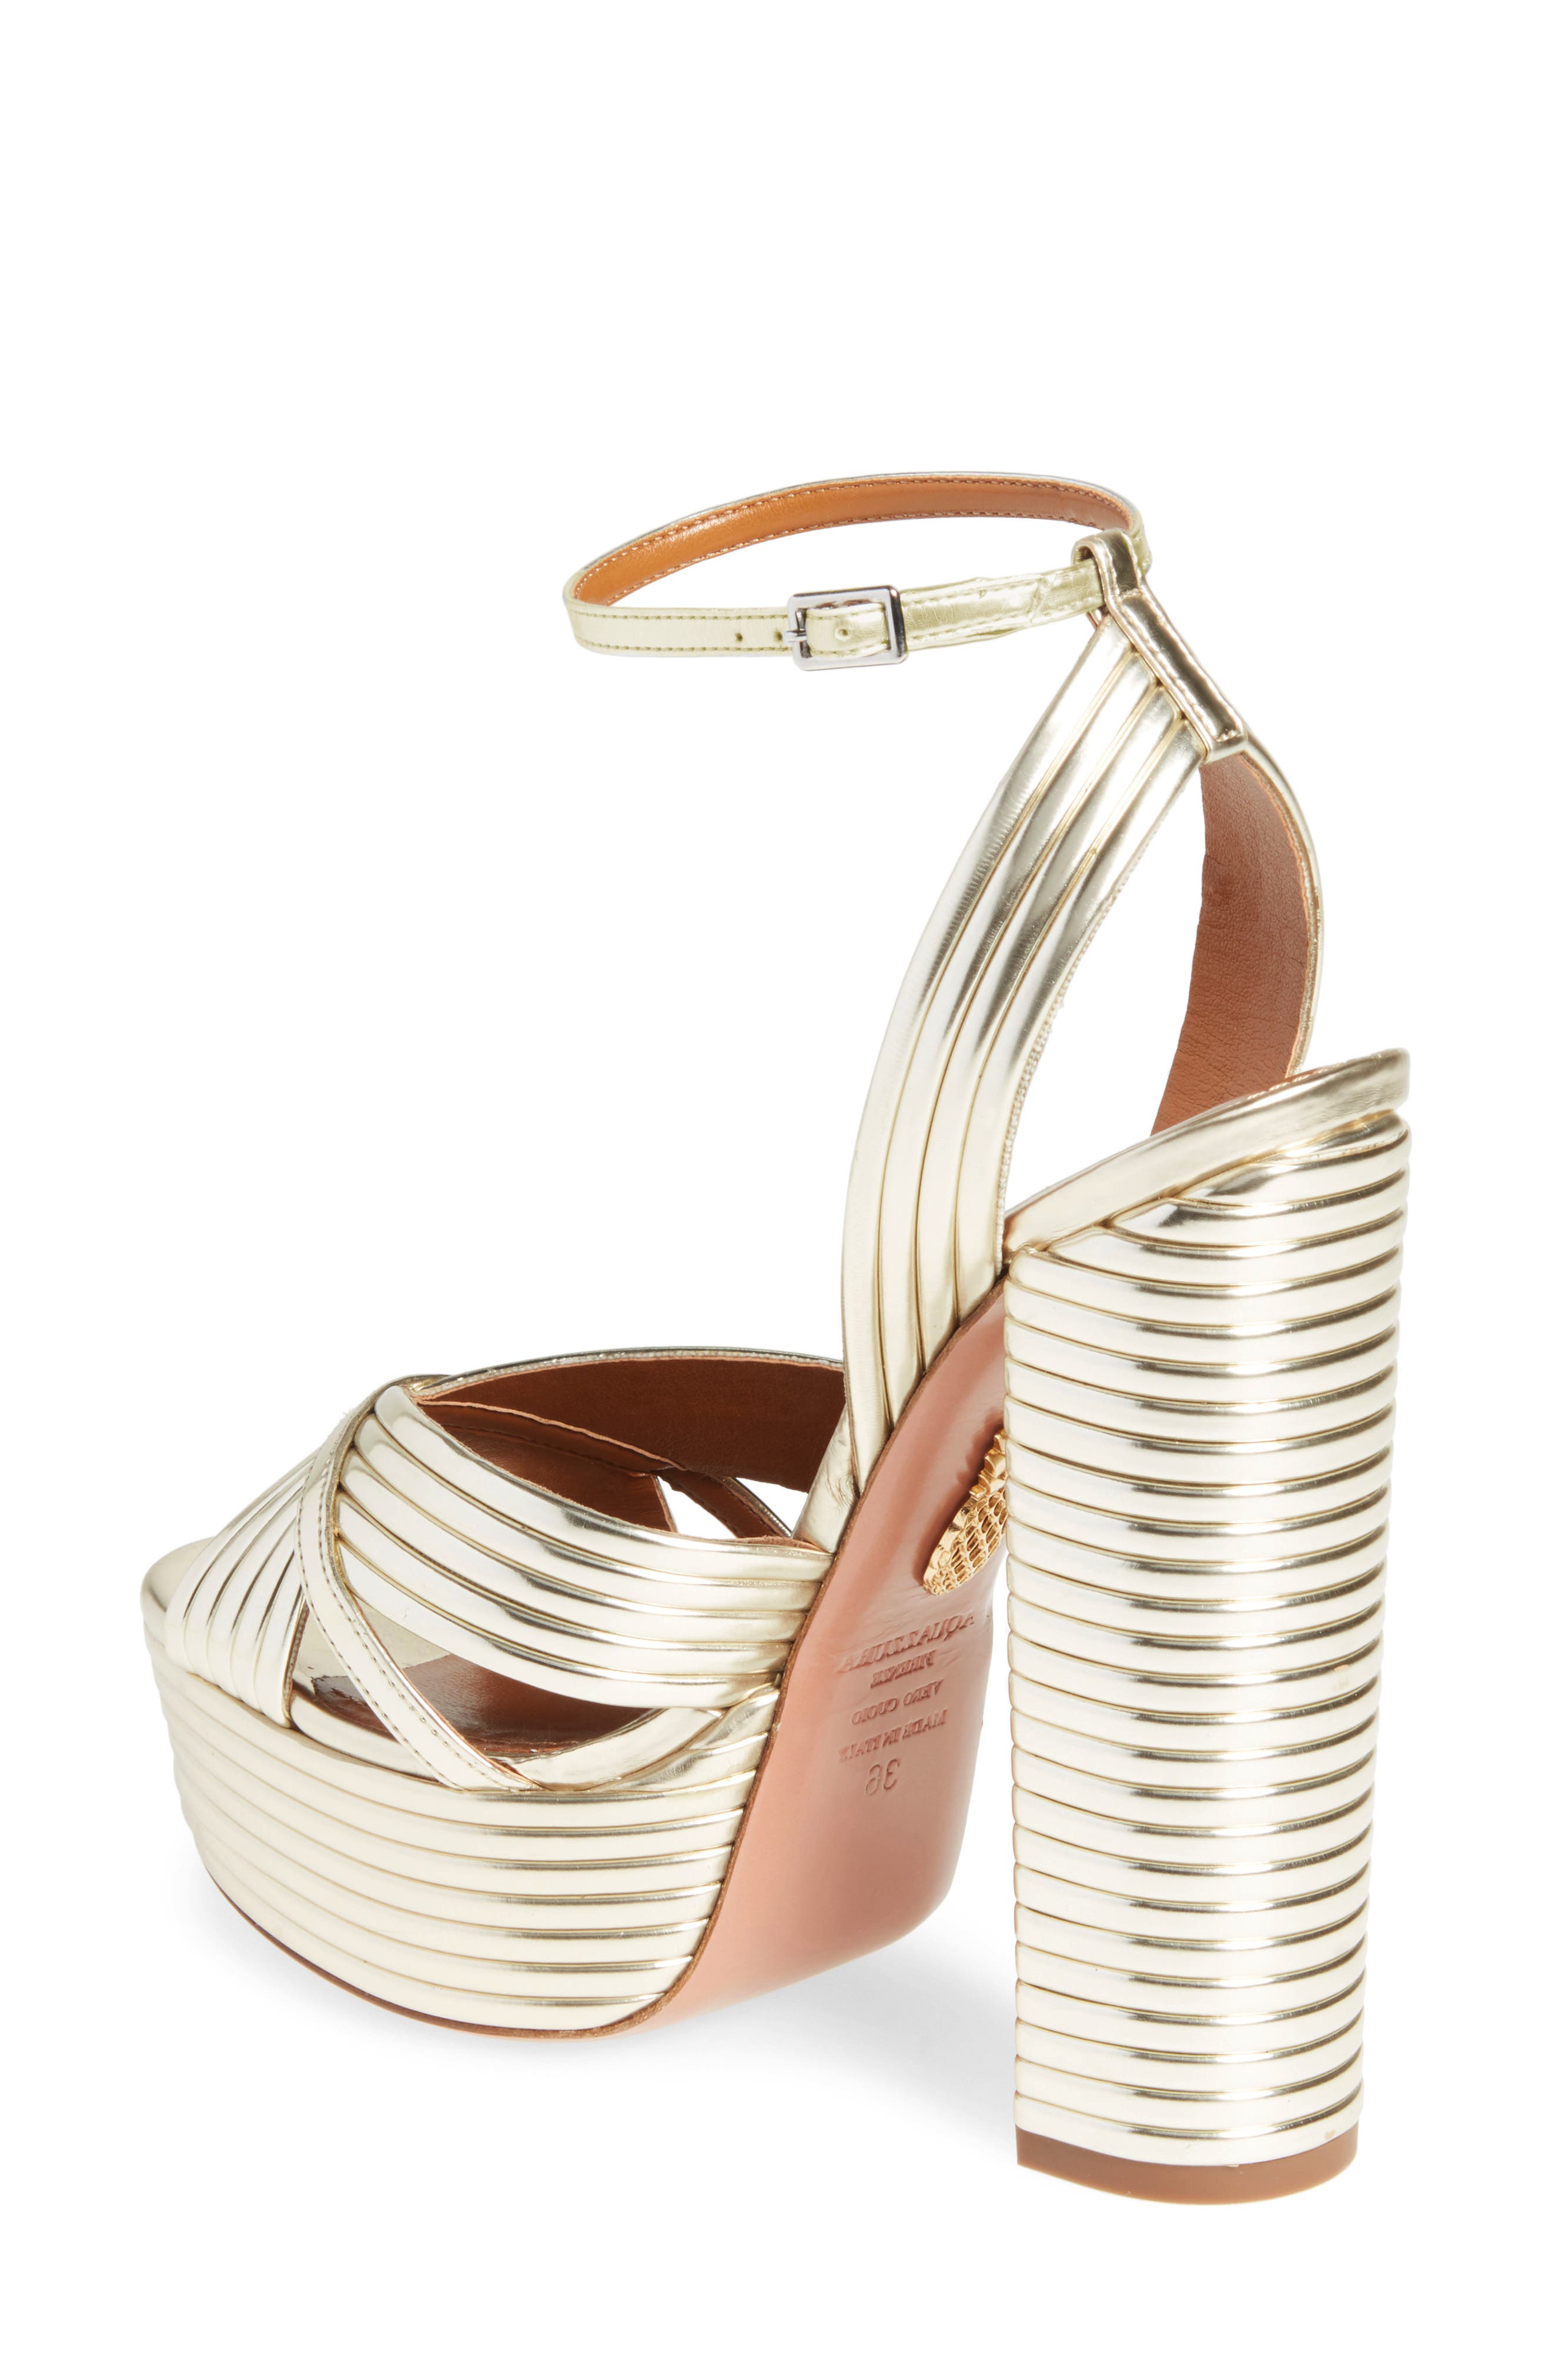 Sundance Platform Sandal,                             Alternate thumbnail 2, color,                             Light Gold